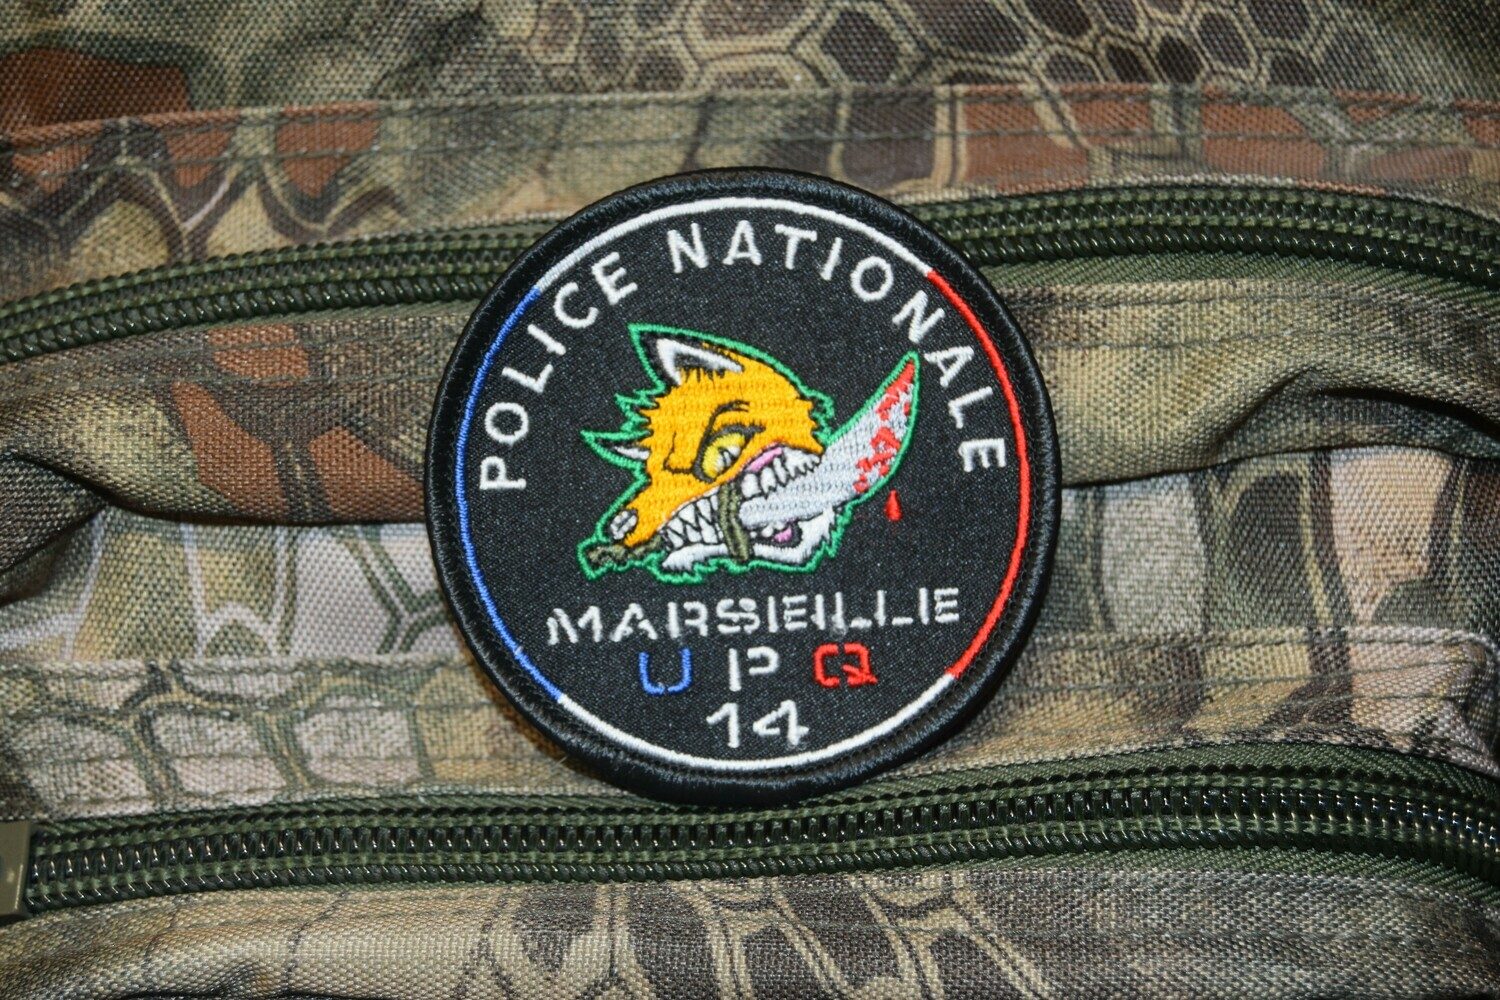 Patch Police Nationale Marseille UPQ 14